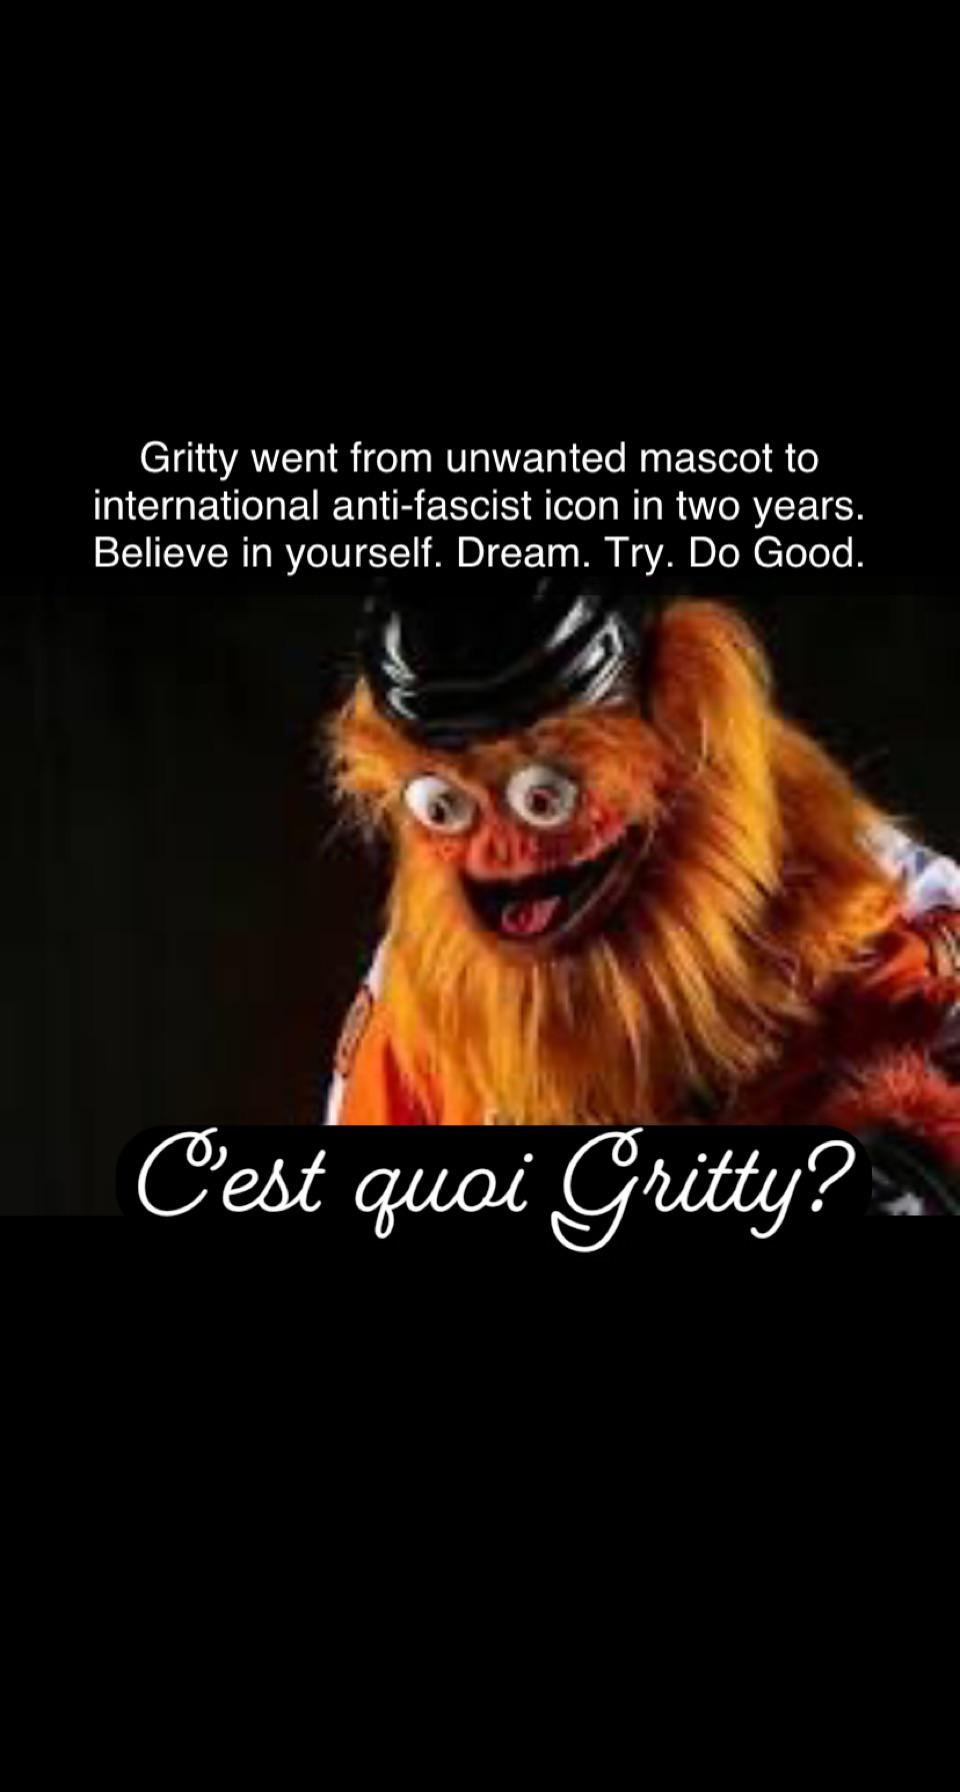 Cest quoi Gritty [Image]